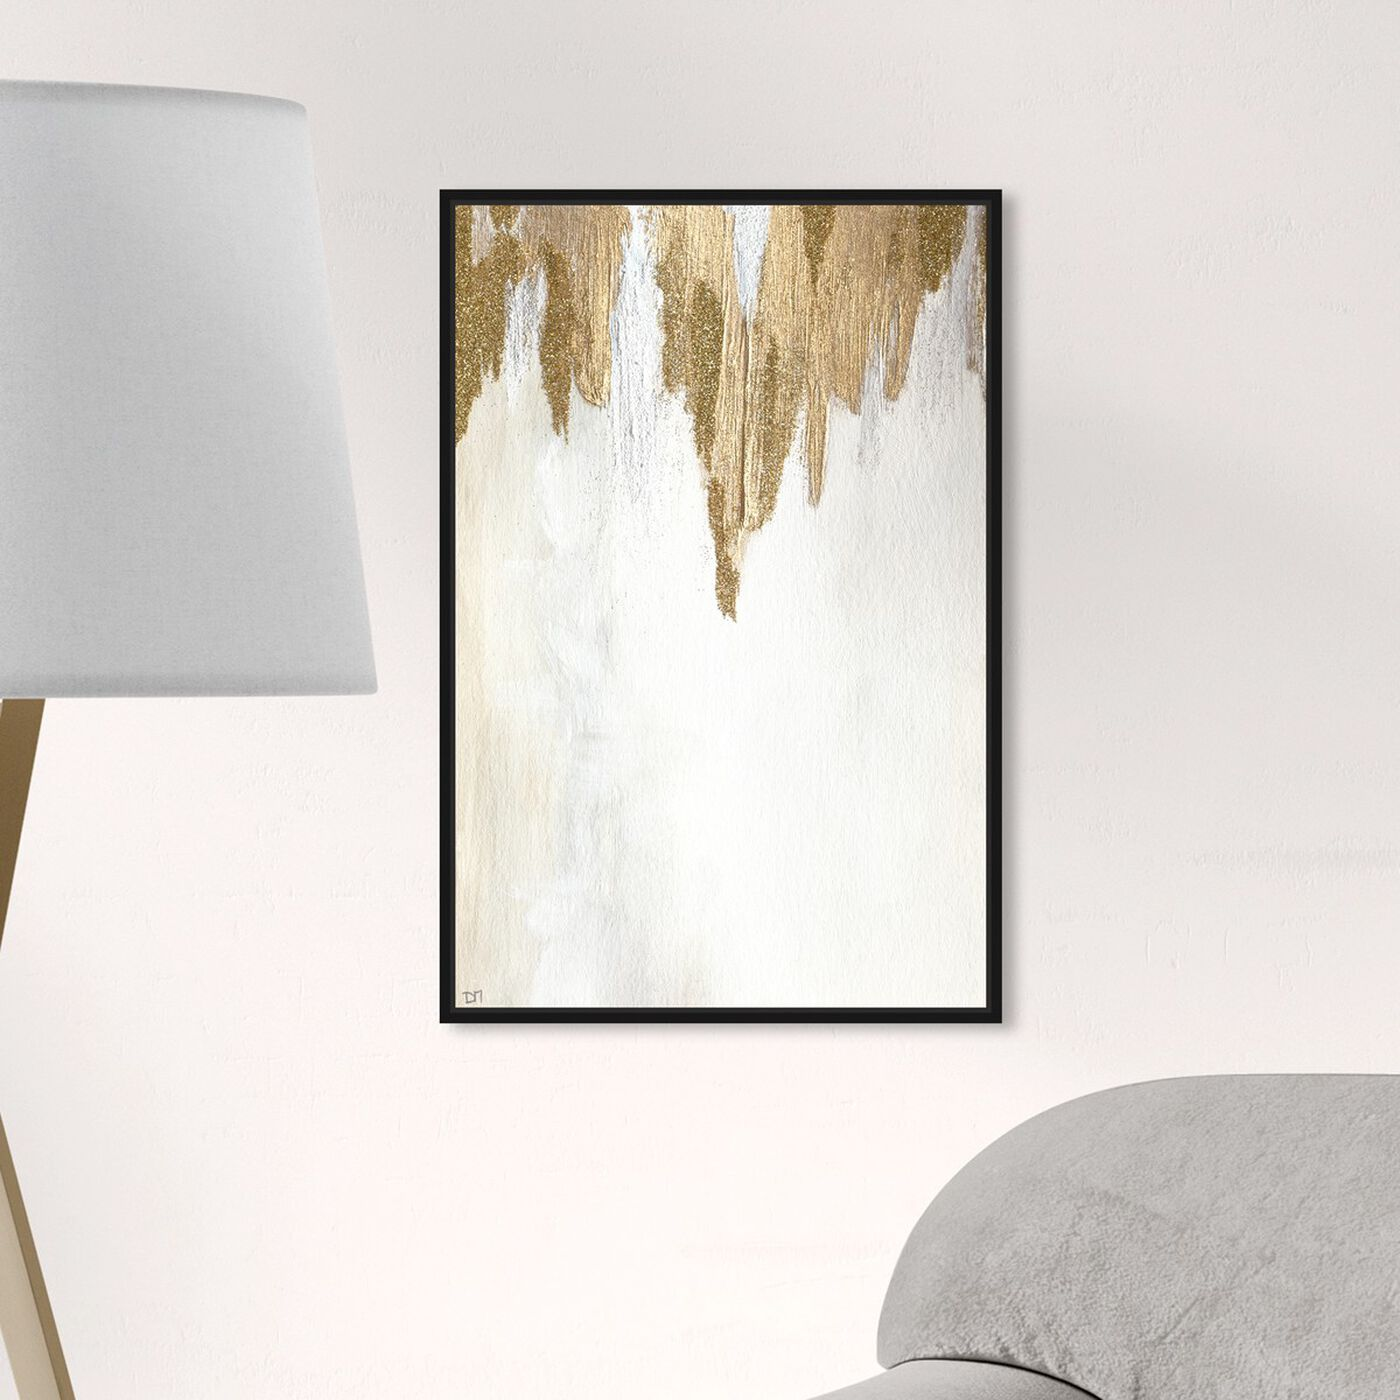 Hanging view of Very Golden featuring abstract and paint art.